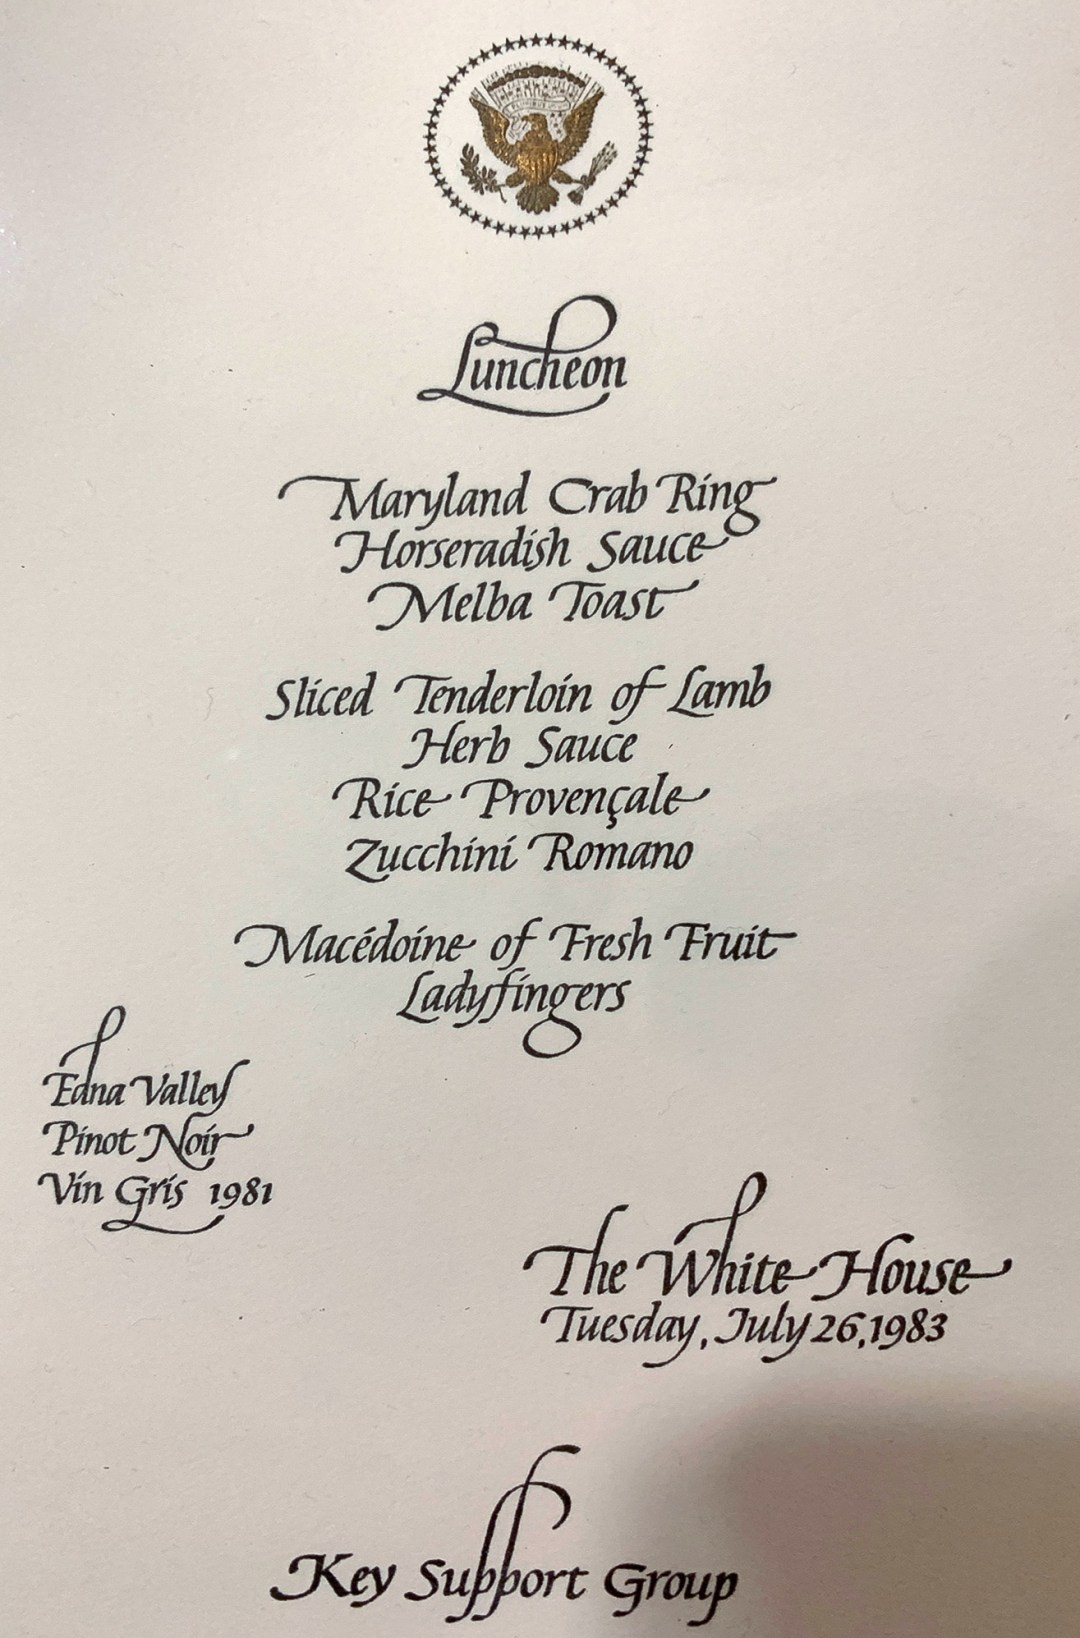 WhiteHouseMenu-Jul26-1983-EdnaValley